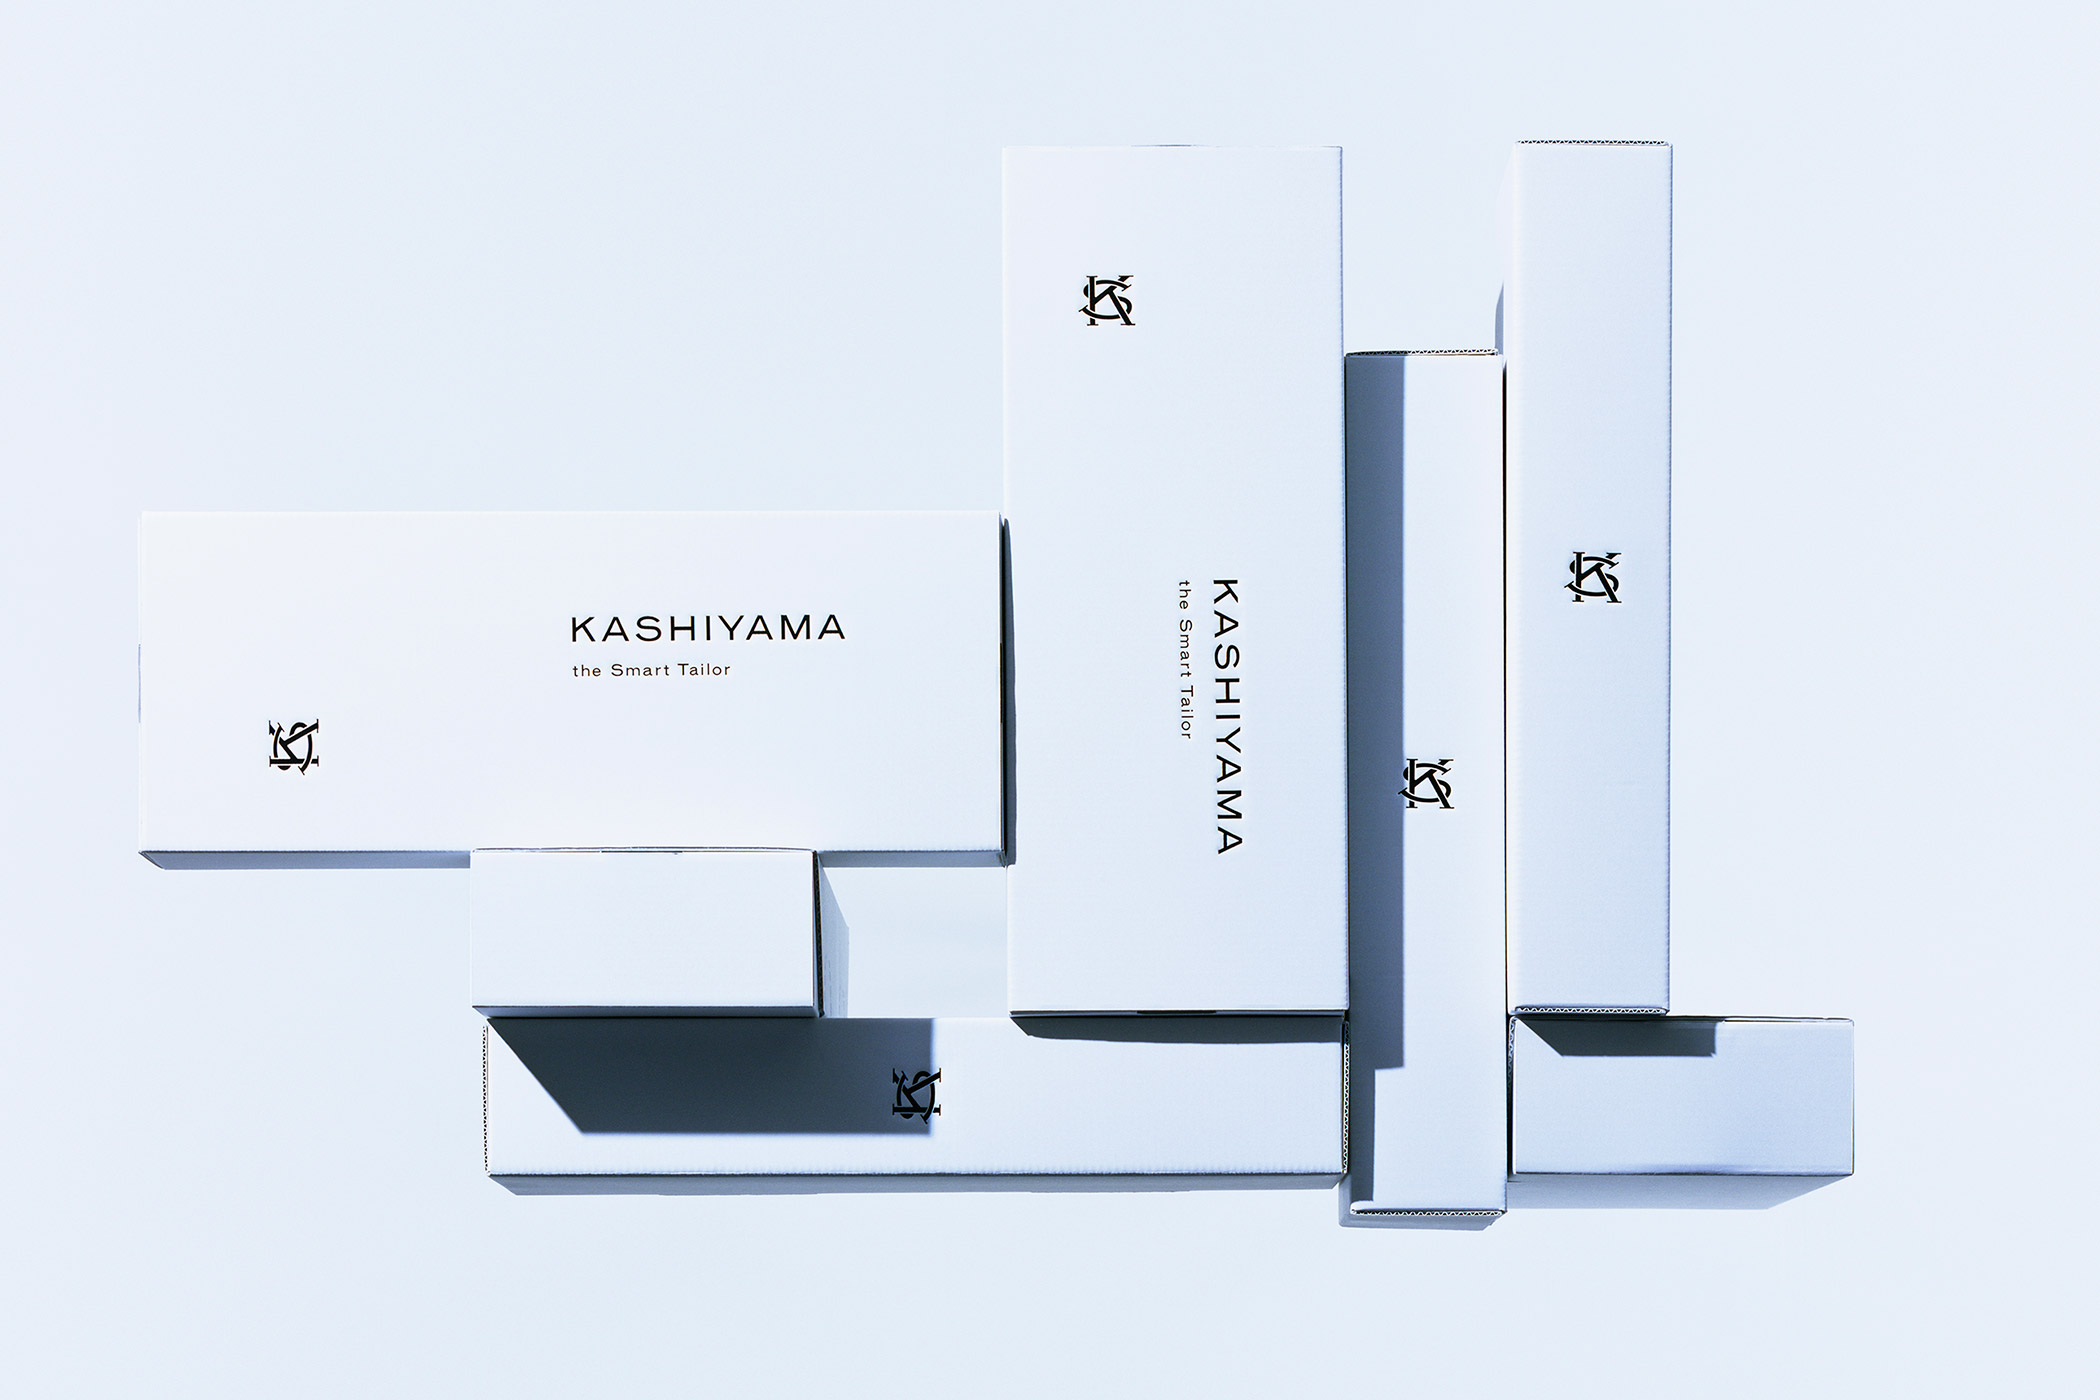 KAHIYAMA the Smart Tailor